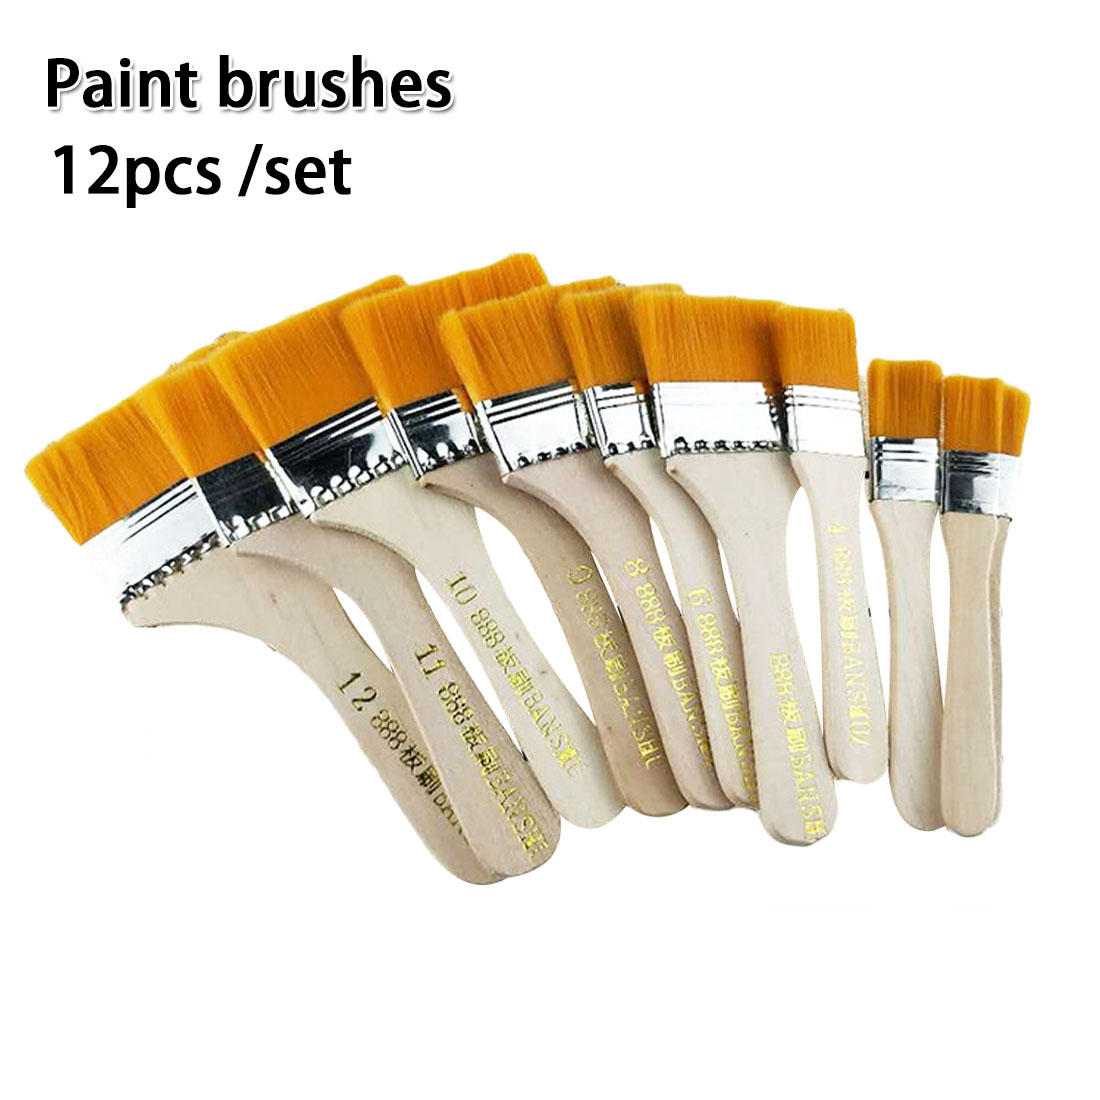 12Pcs Nylon Hair Painting Brush Oil Watercolor Differeent Size Acrylic Paint  Scrubbing Brushes